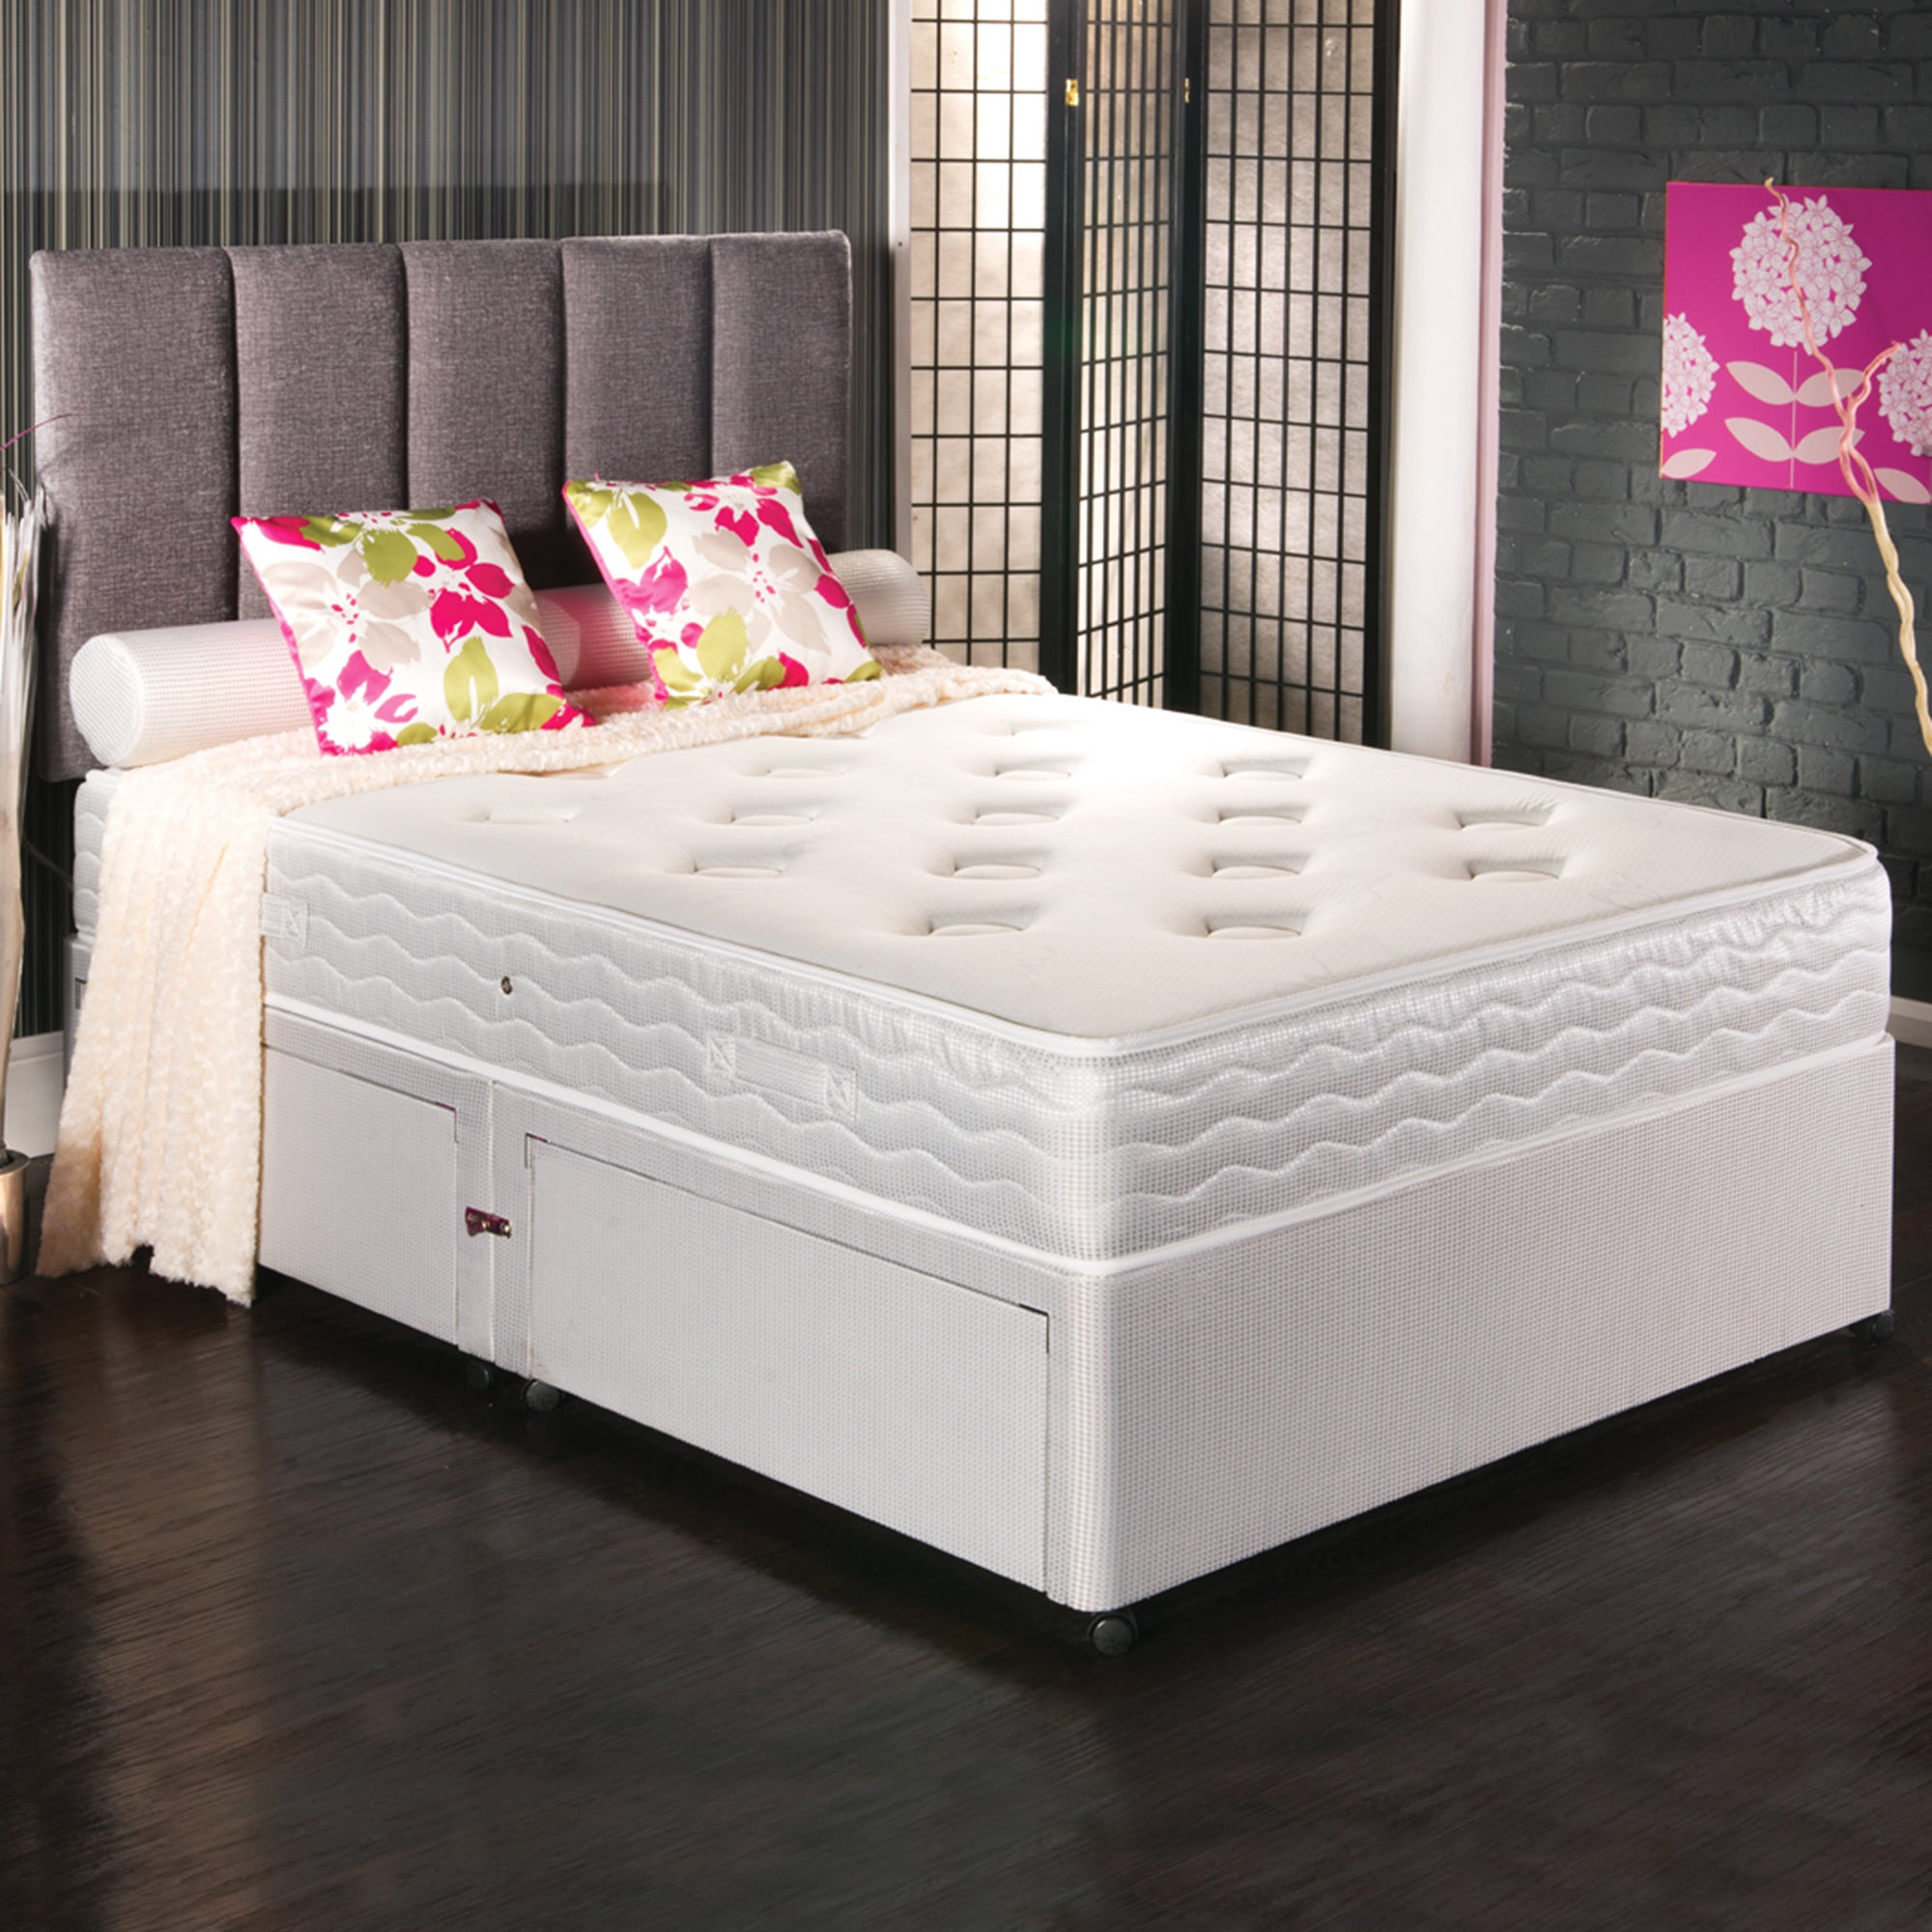 Double bed headboards shop for cheap beds and save online for Double divan bed no headboard